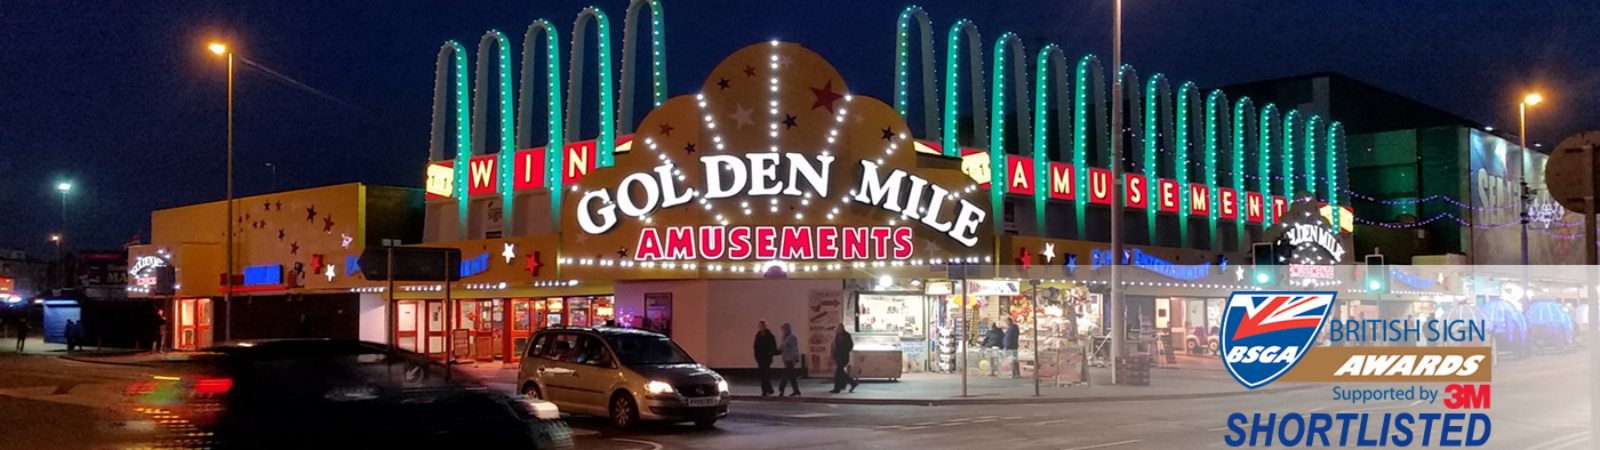 golden-mile